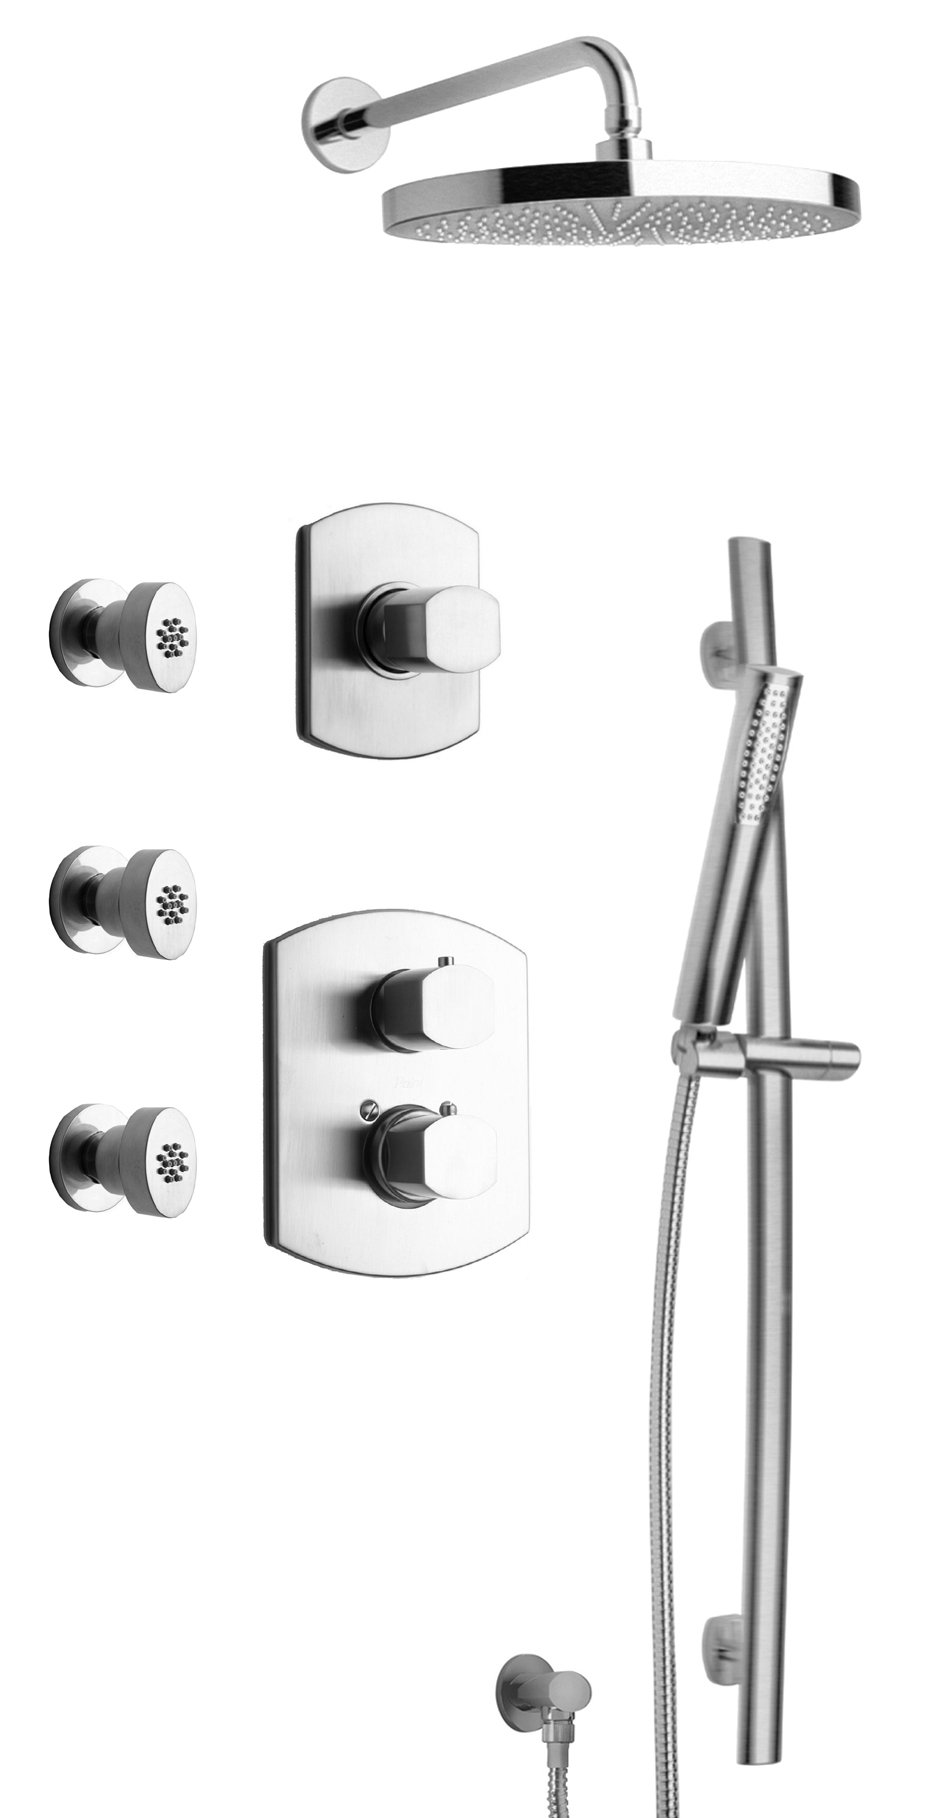 "Thermostatic Shower With 3/4"" Ceramic Disc Volume Control, 3-Way Diverter, Slide Bar and 3 Body Jets - Chrome Finish"